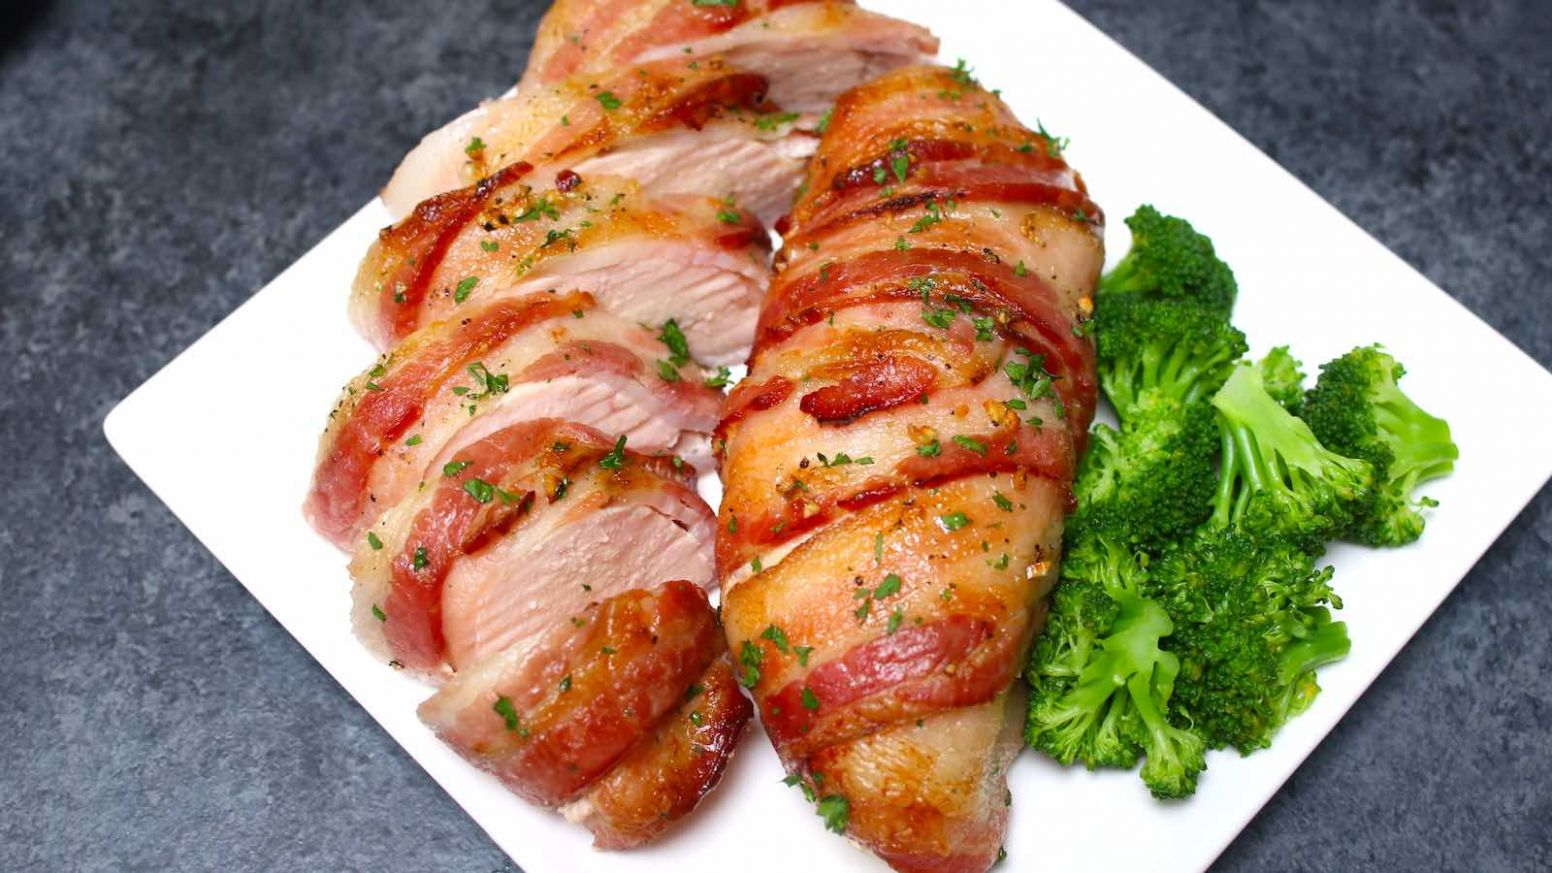 Slow Cooker Bacon Garlic Chicken Breast (+VIDEO) - Recipes Chicken Breast And Bacon